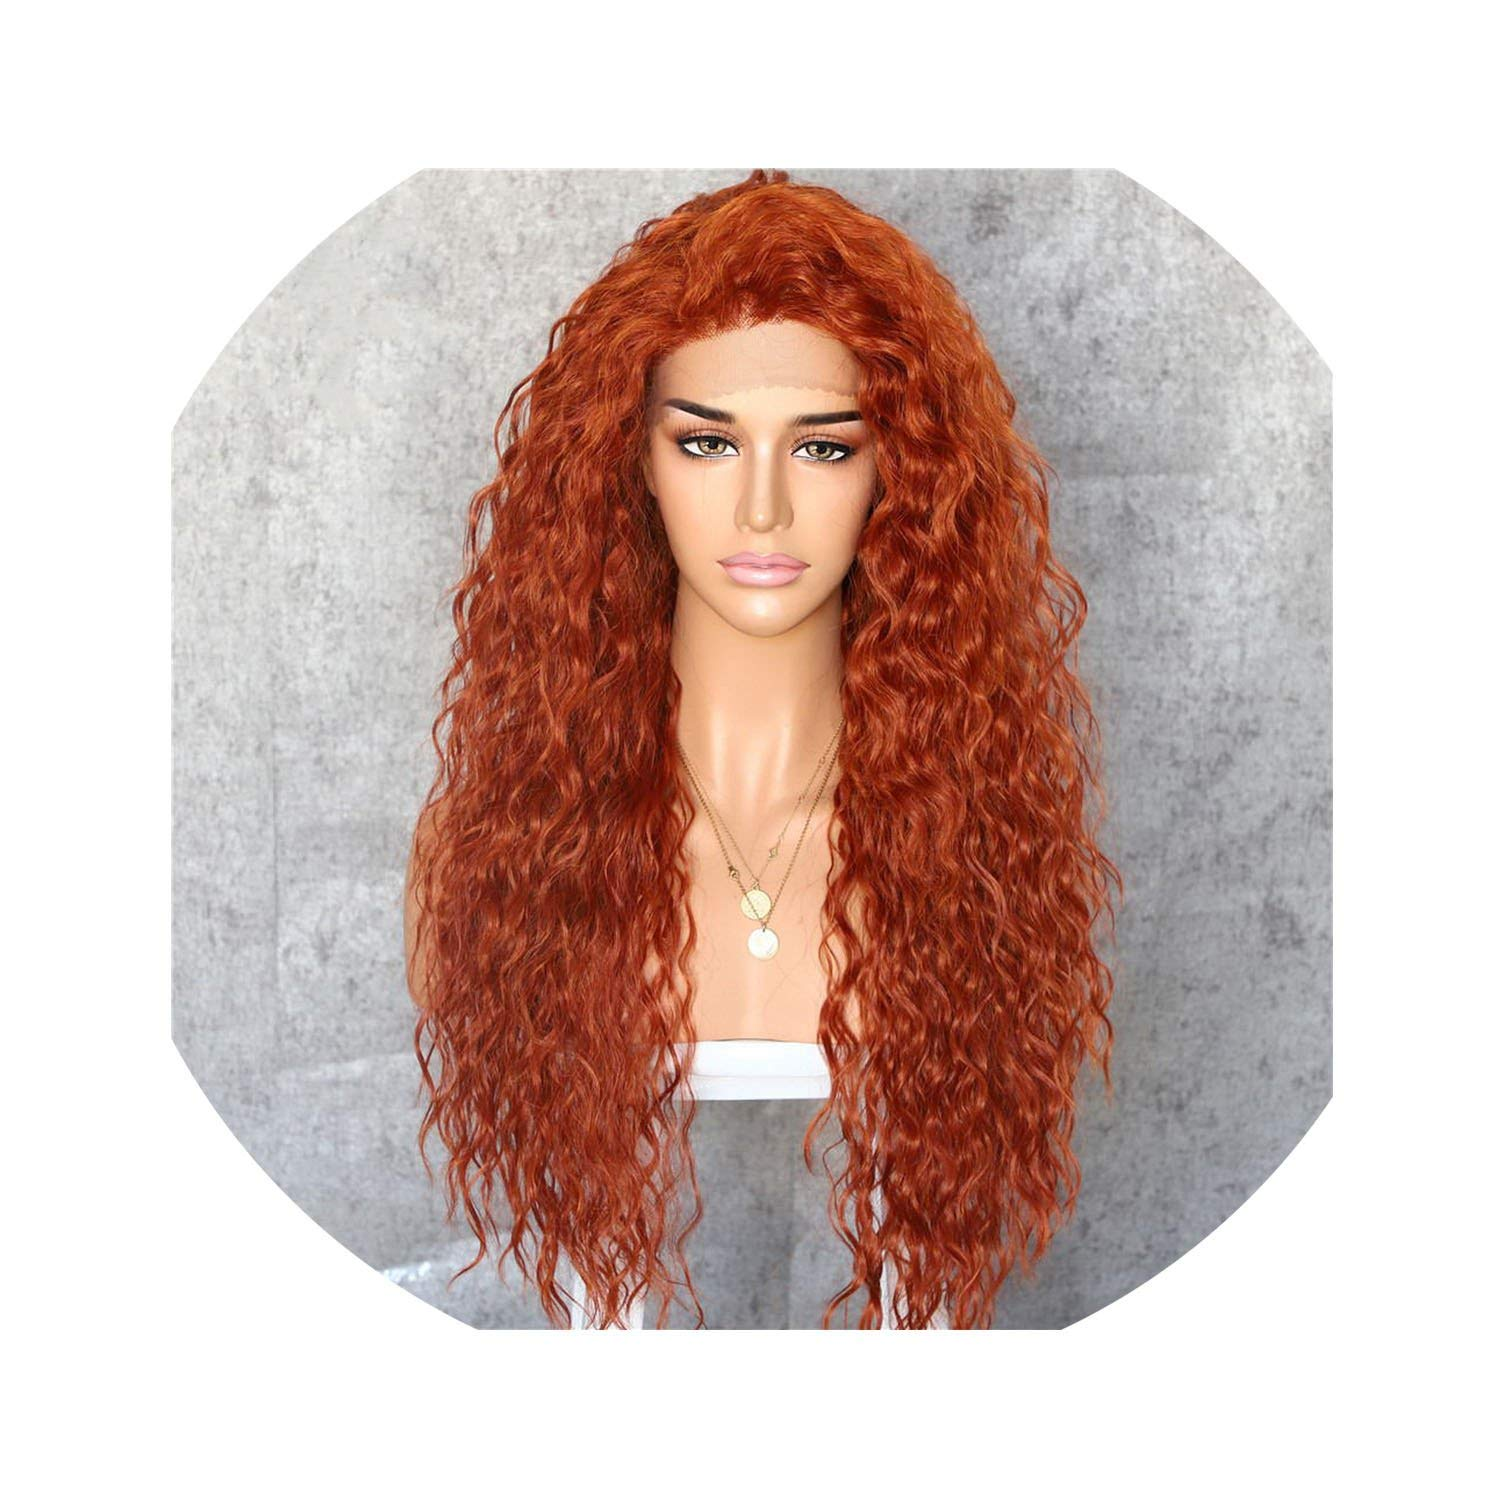 Peony red Kinky Curly Type Futura Heat Resistant Hair Black Highlight Gold Women Daily Makeup Synthetic Lace Front Party Wig,Orange,150%,Lace Front,26inches 71gLC6SaCsL